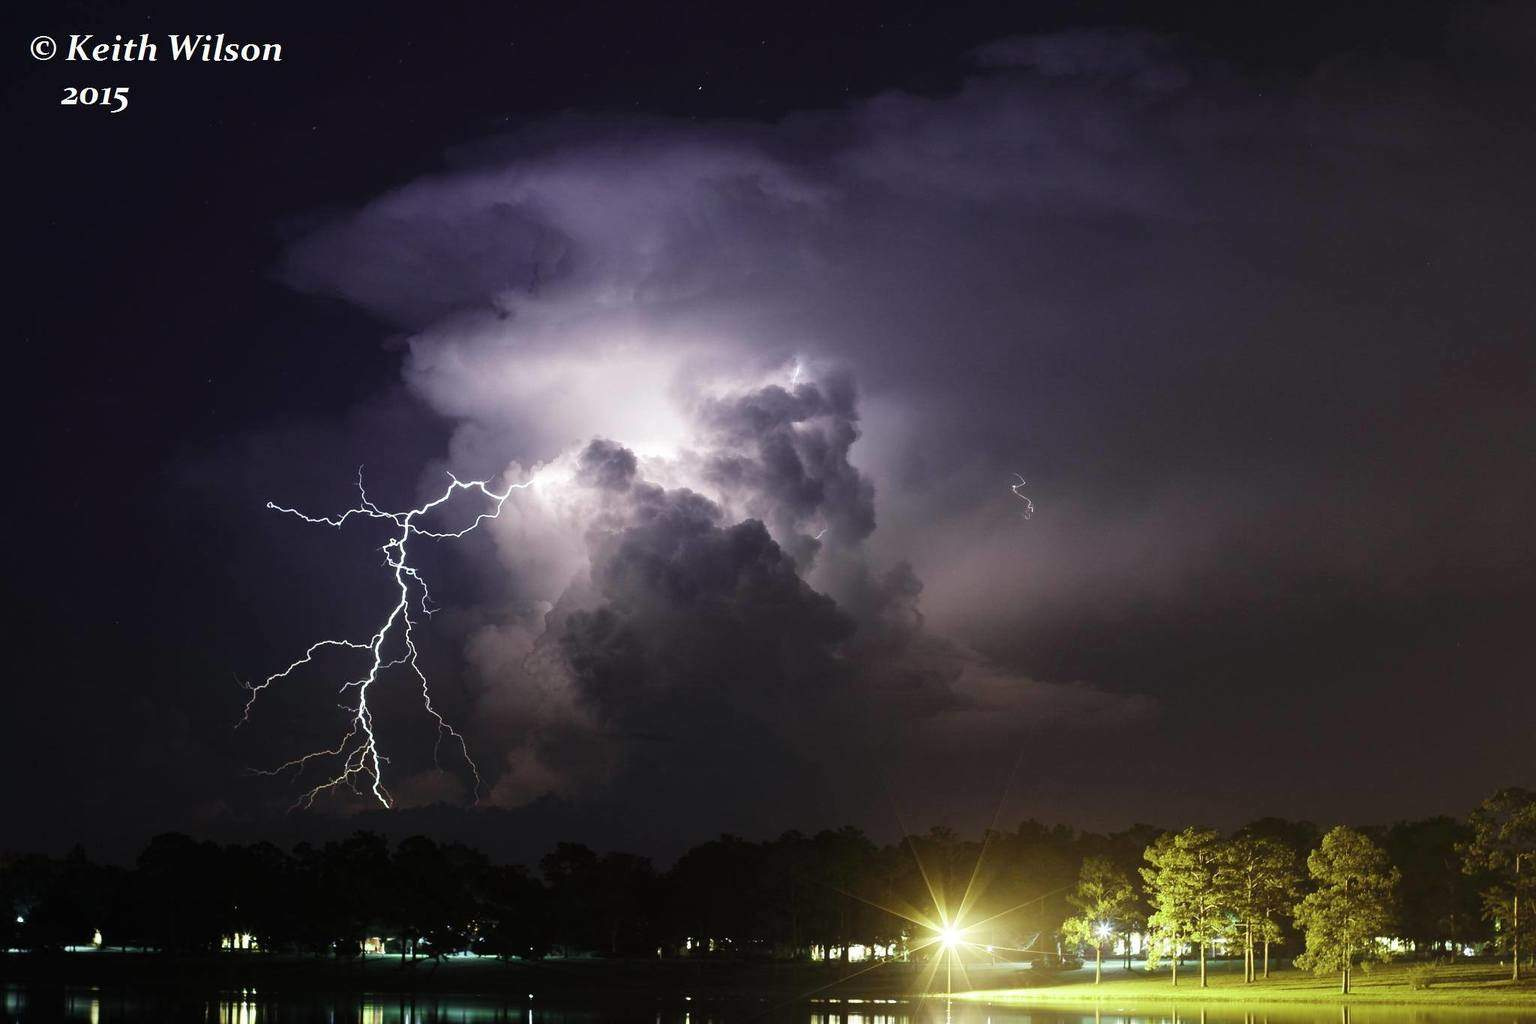 Florida Panhandle on 8/9/15. One of days where you aren't expecting any action, then darkness falls and you see flashes through the trees. Went to this spot about a mile from my house and was treated to this bolt producing isolated beast.